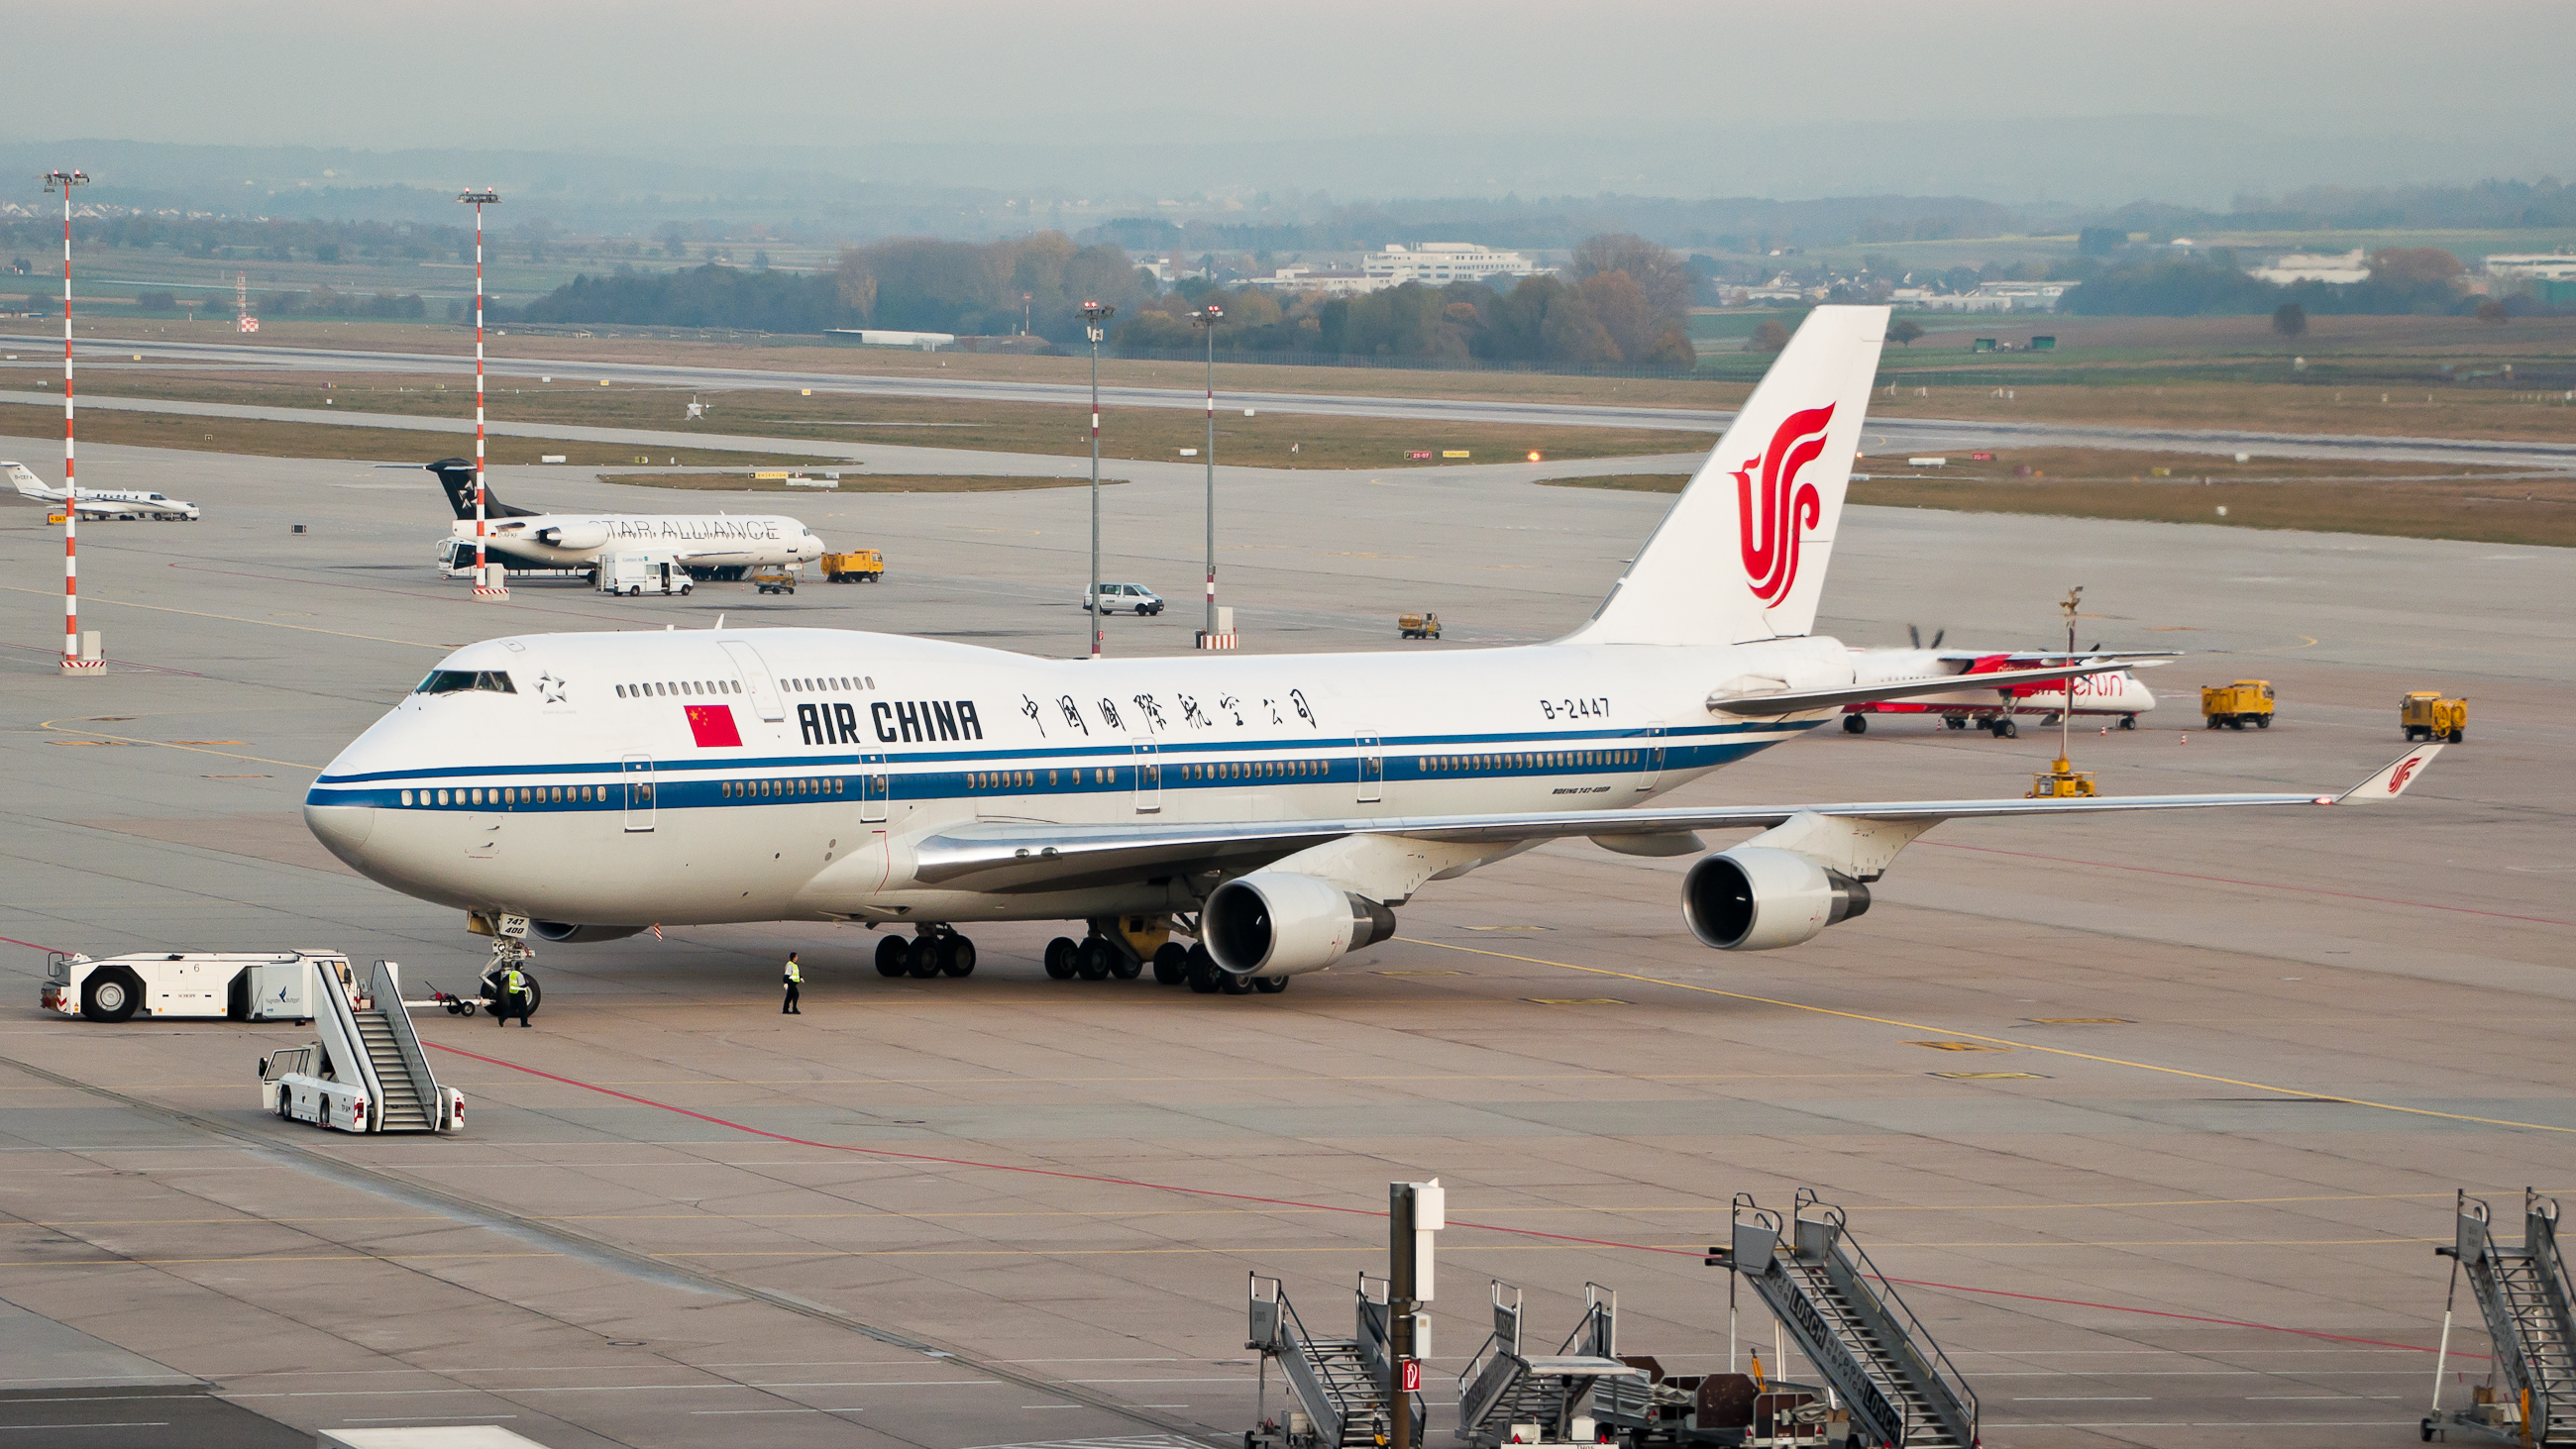 File:Air China B747-4J6 B-2447 EDDS 02.jpg